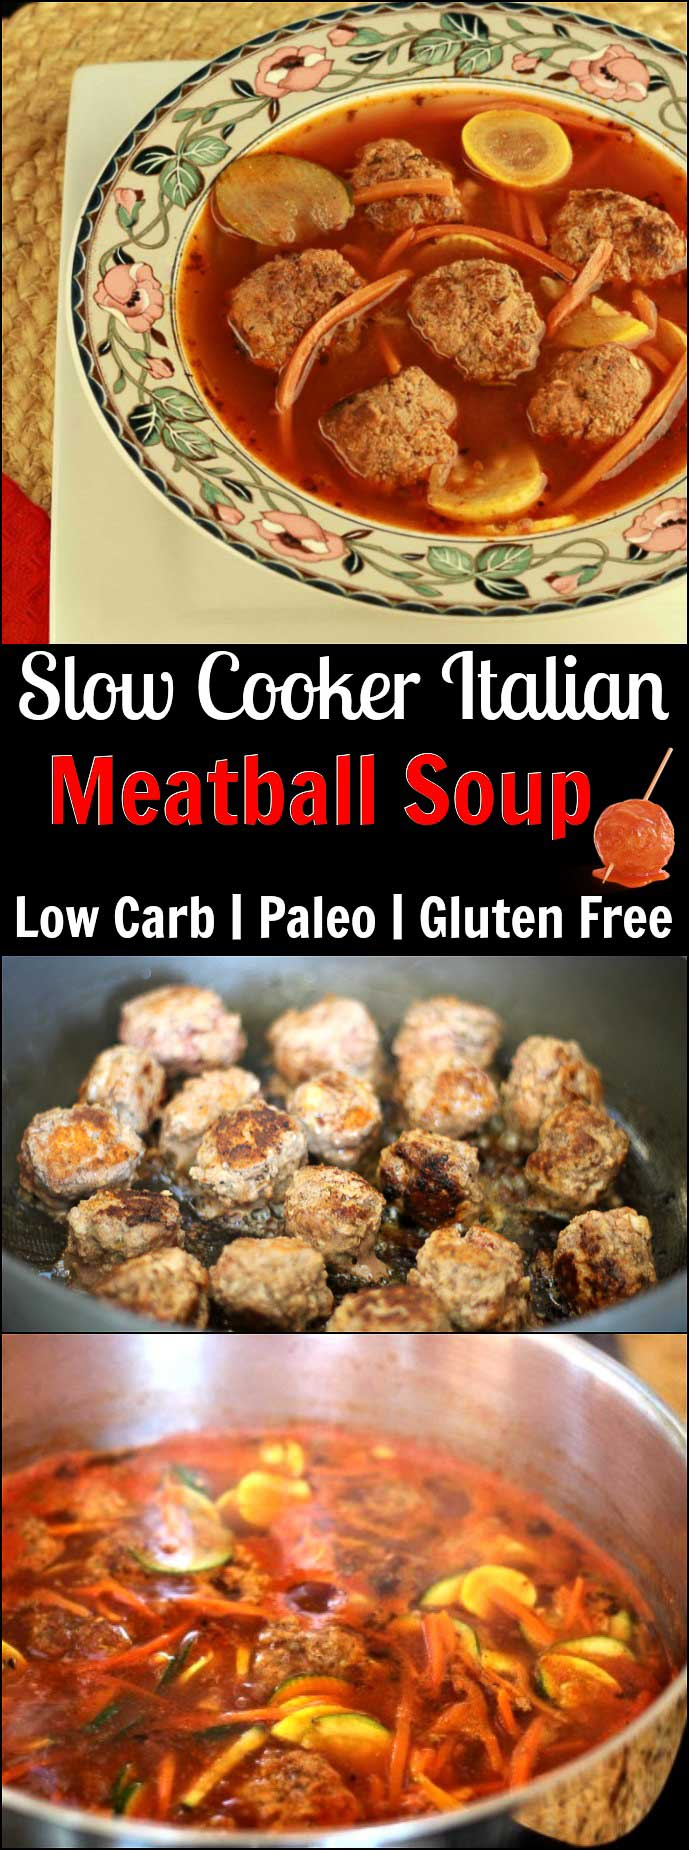 Paleo Italian Meatball Soup- Low carb and paleo